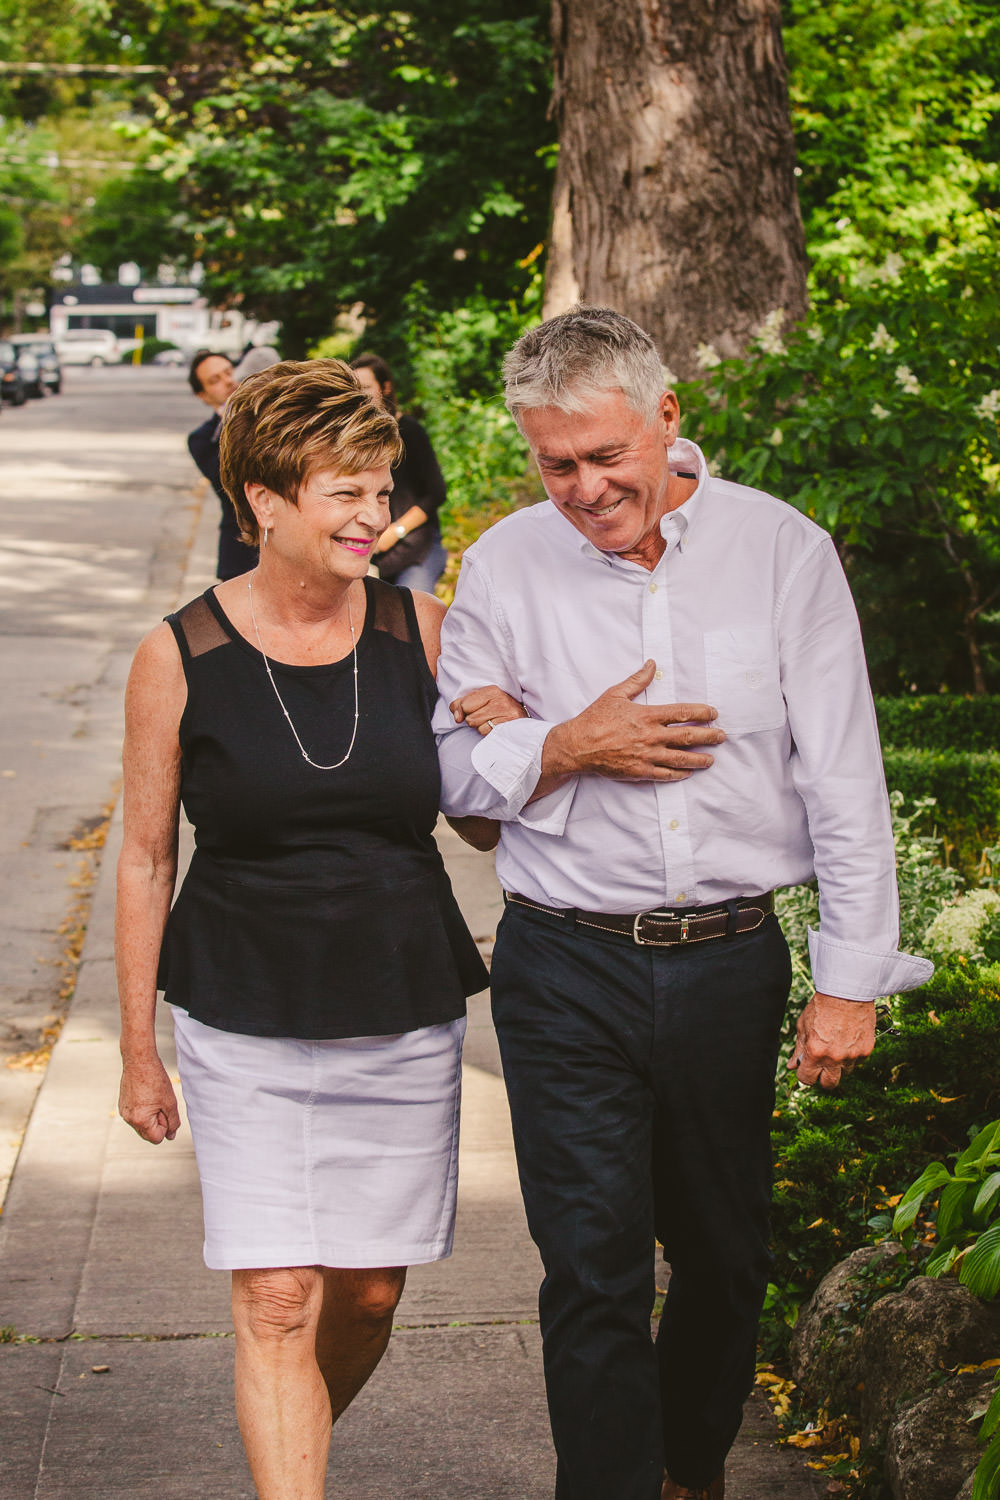 Grandparents walking on sidewalk smiling